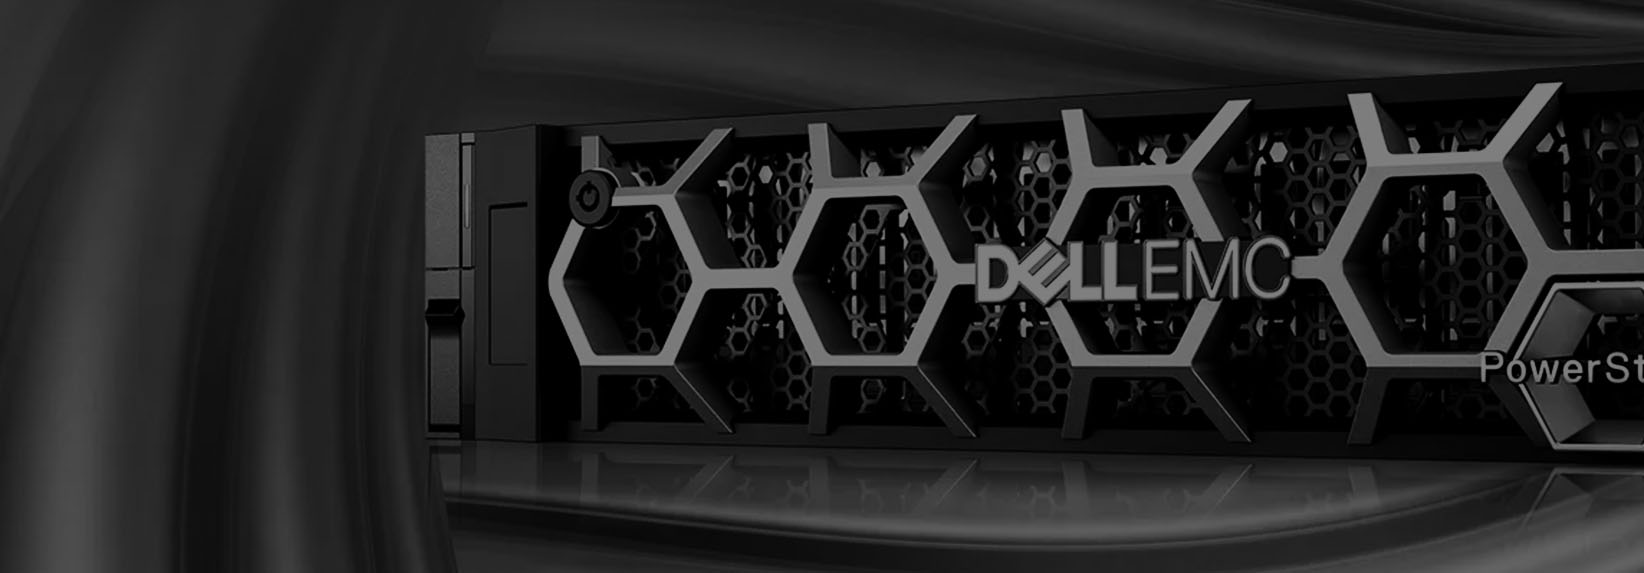 DobiMigrate Now Integrated with Dell EMC PowerStore for Fast Migration of Legacy Systems